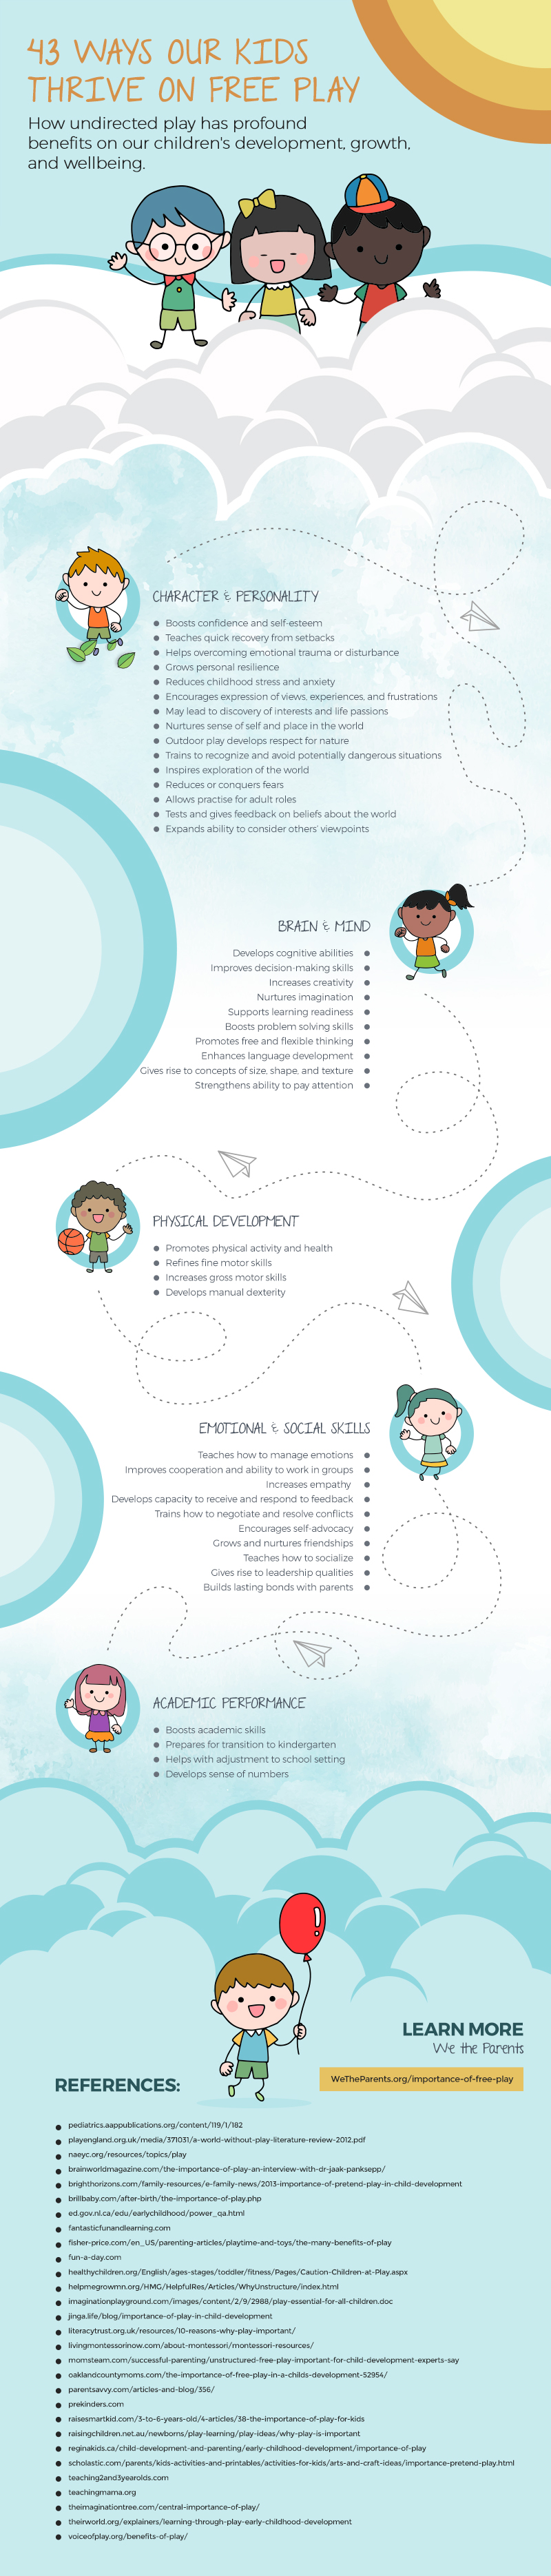 43-Benefits-of-Free-Play-INFOGRAPHIC.jpg